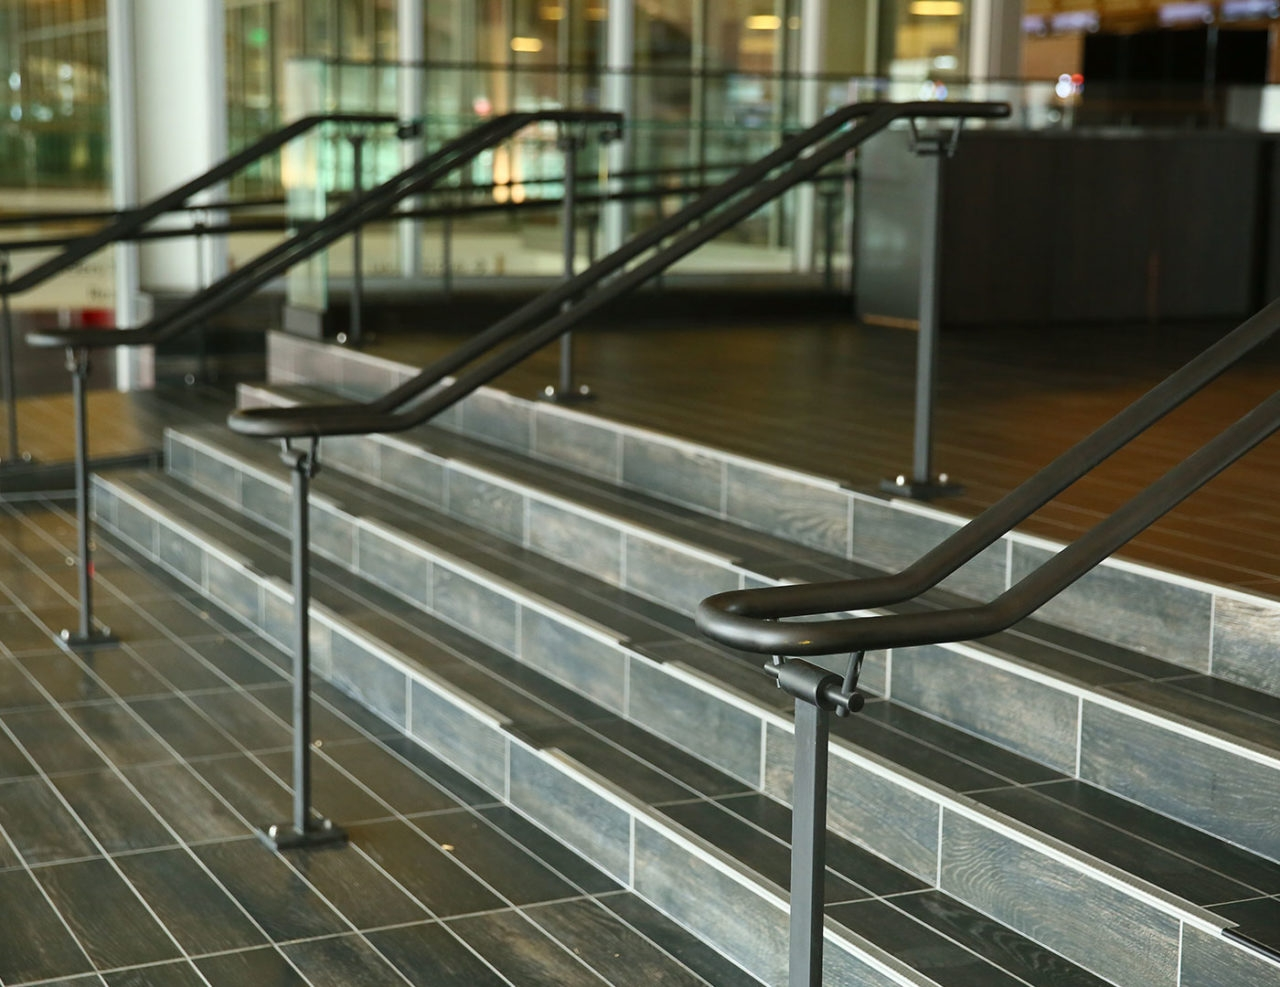 Griprail Commercial Metal Handrails Trex Commercial Products   Exterior Metal Handrails For Steps   Deck Railing   Outdoor Stair   Railing Systems   Wrought Iron Railings   Concrete Steps